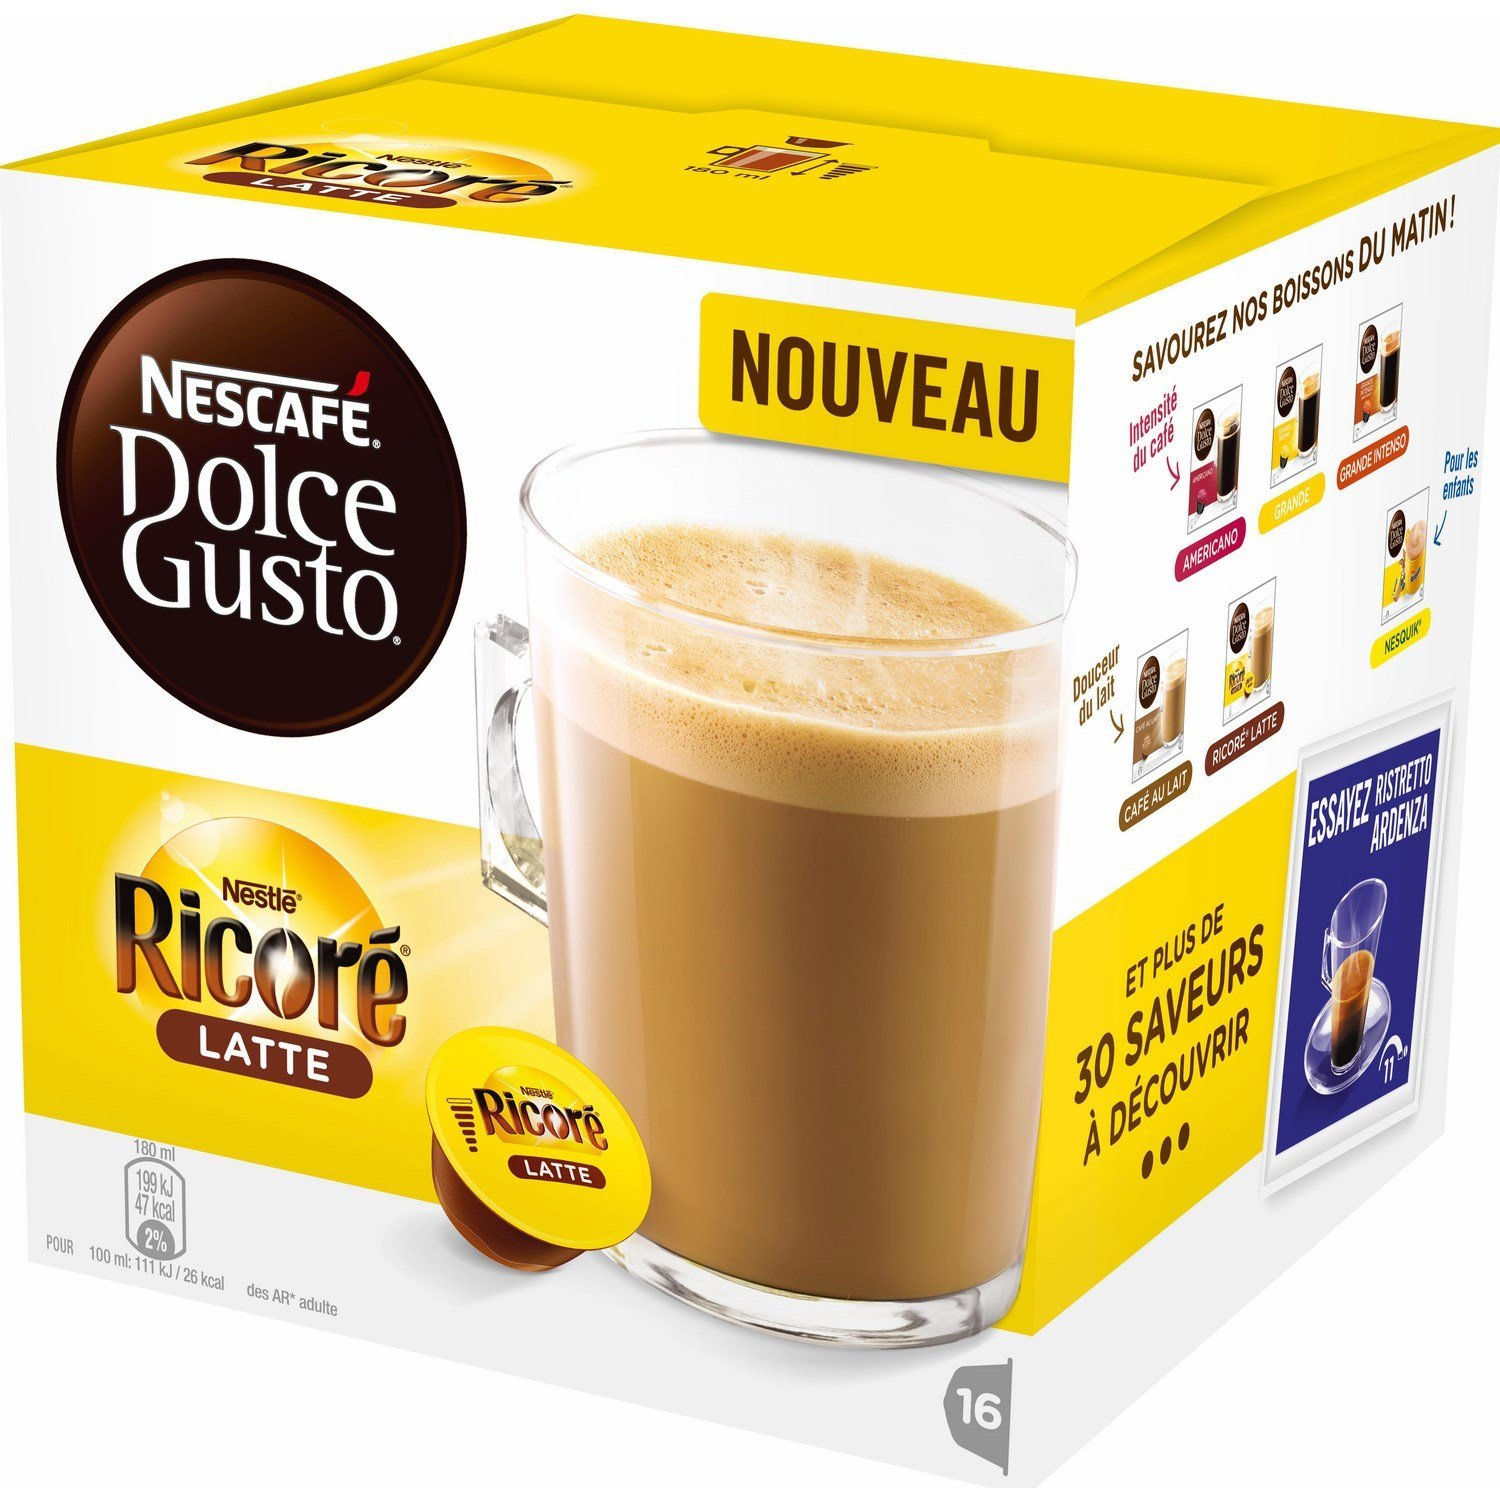 Nescafe Dolce Gusto Ricore Latte - 16 Capsules - Other